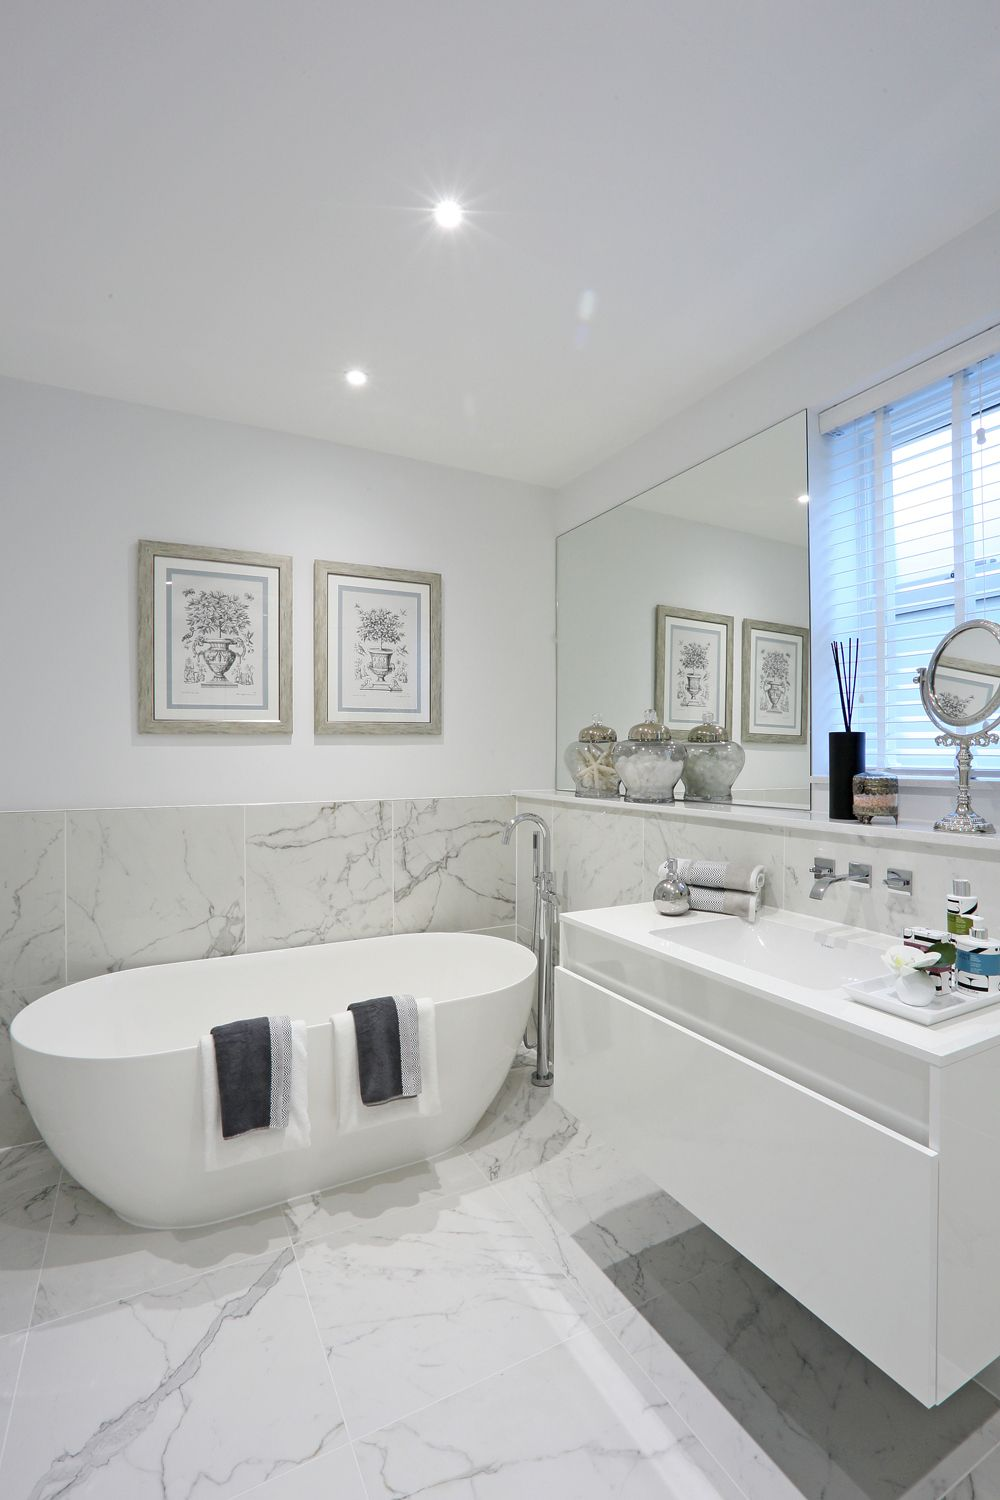 Half tiled marble effect walls and floor create a dramatic footprint in this stunning contemporary bathroom design